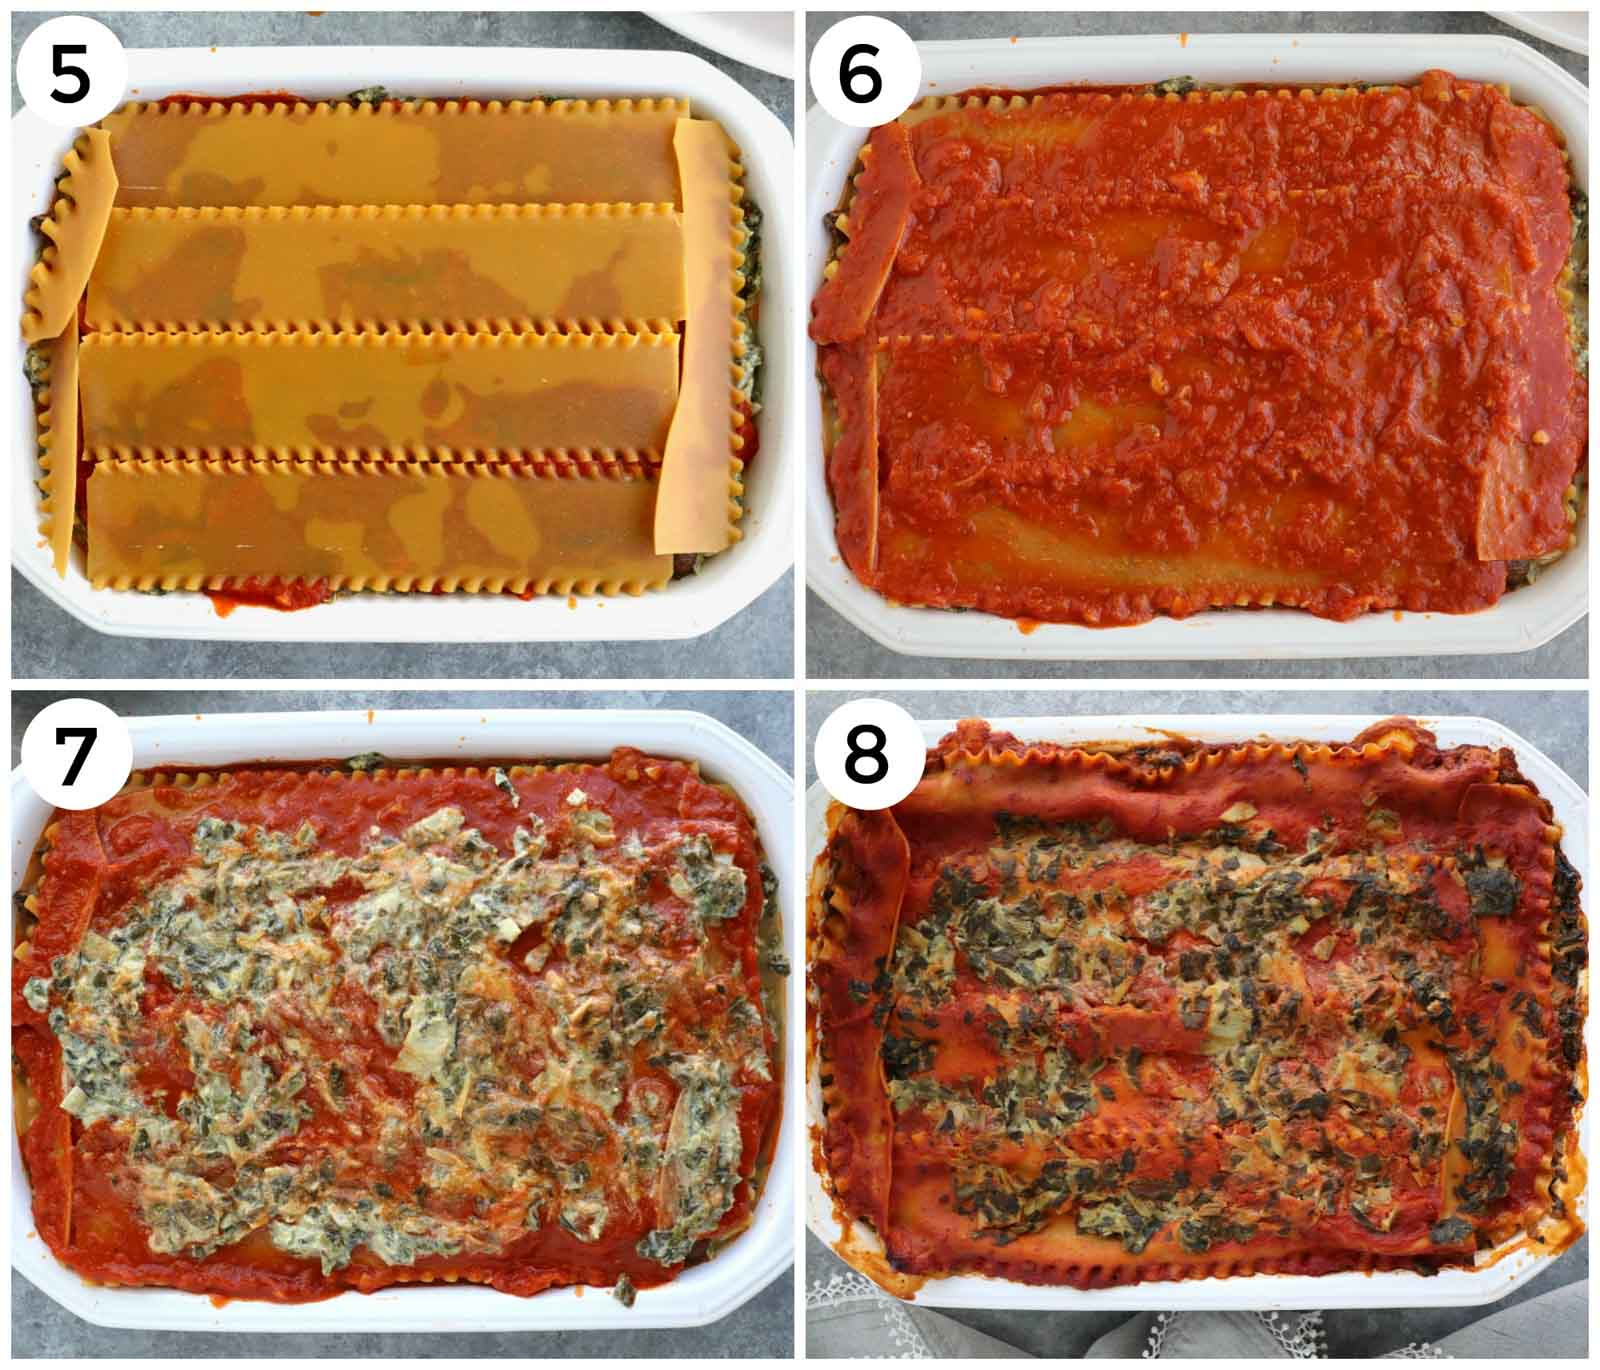 A photo collage showing how to make spinach lasagna step by step.